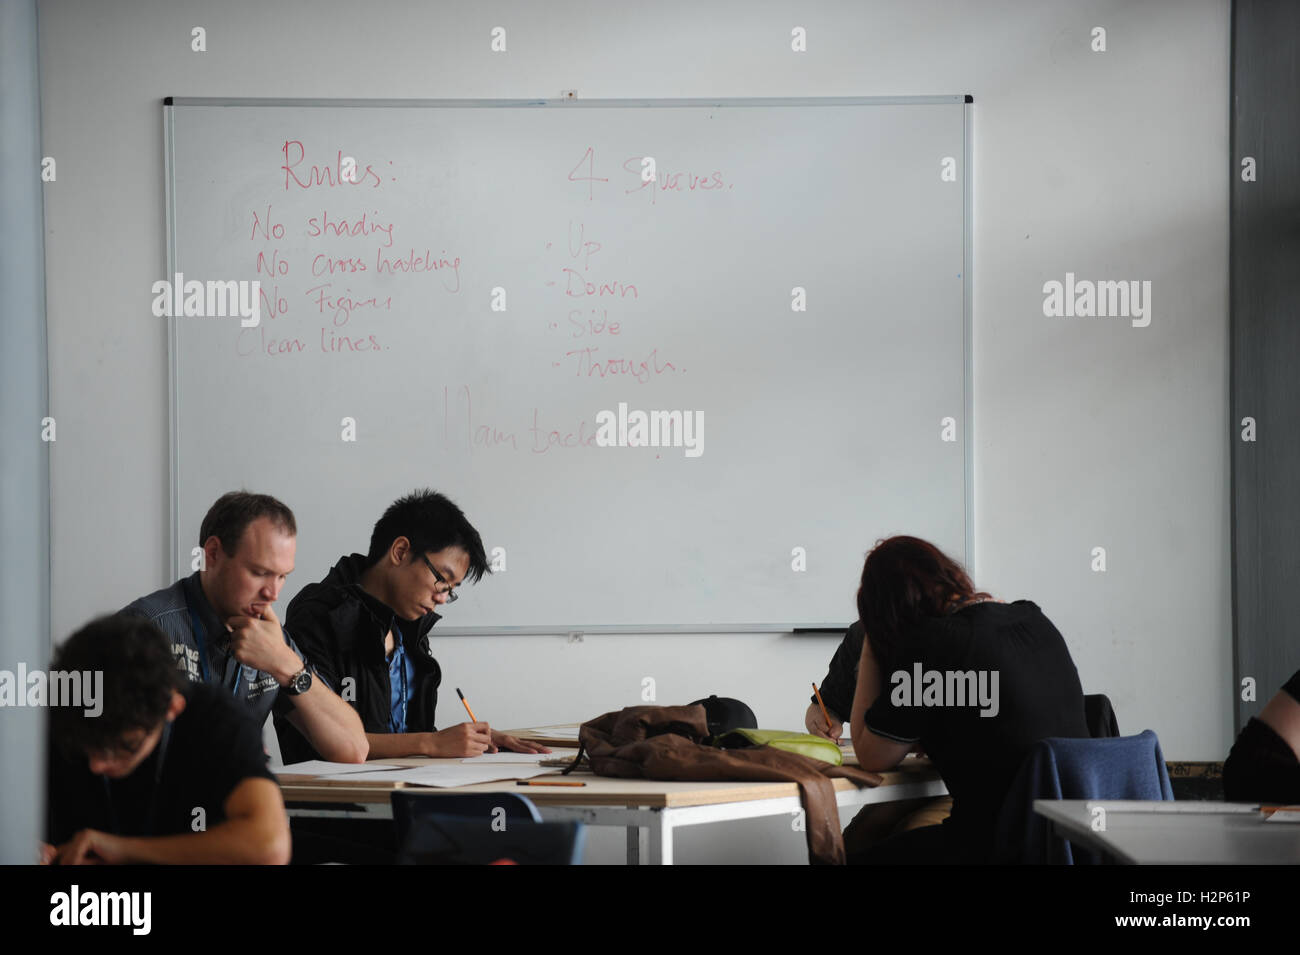 College students get their heads down and work hard on their education in a college classroom with whiteboard behind. - Stock Image